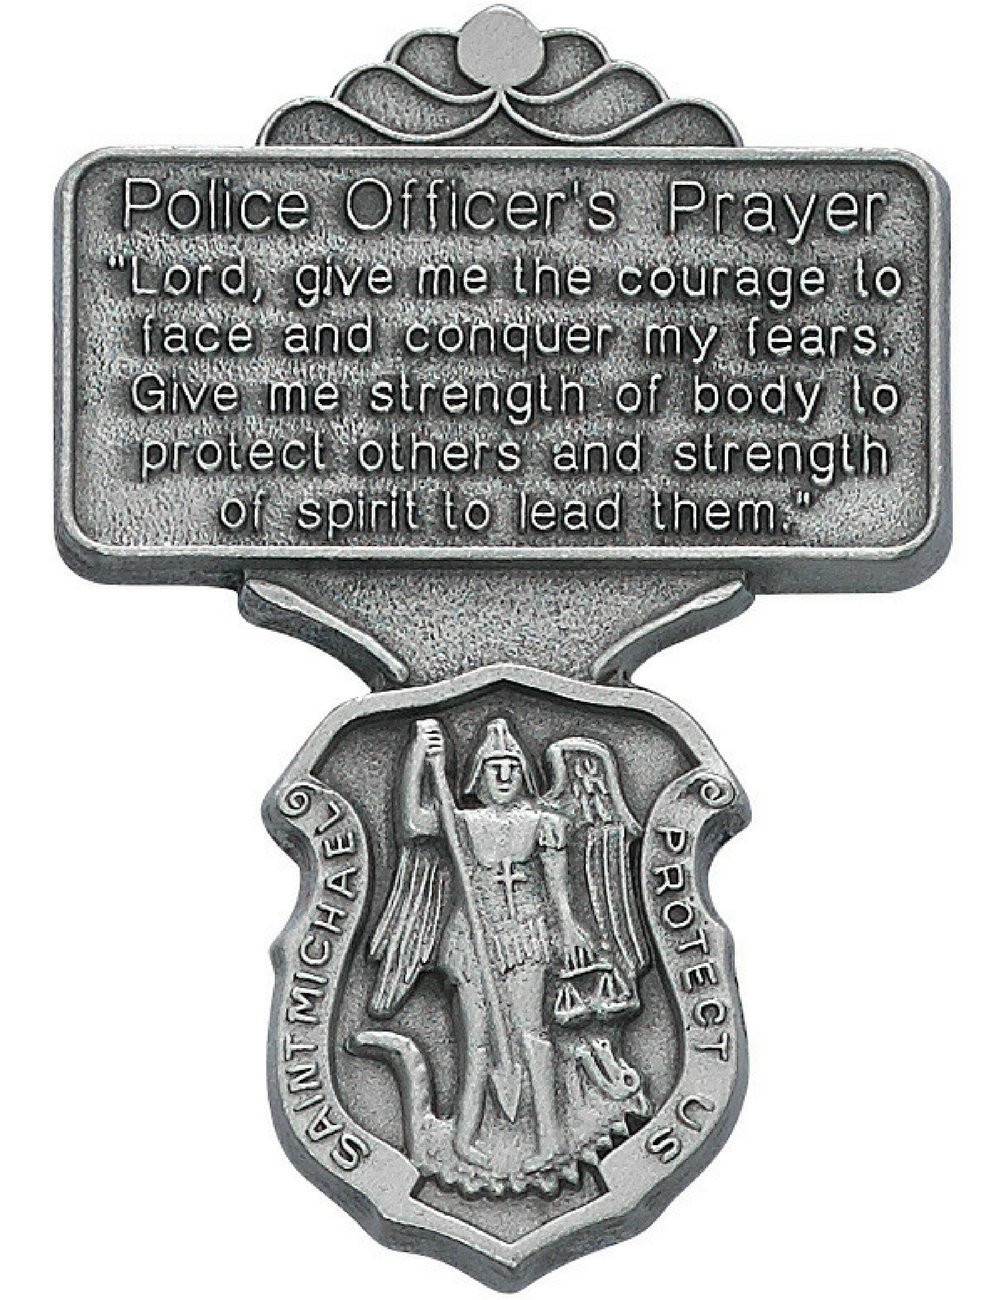 All Patron Saints Saint Michael Police Officer Prayer Auto Visor Clip vc:1001:p